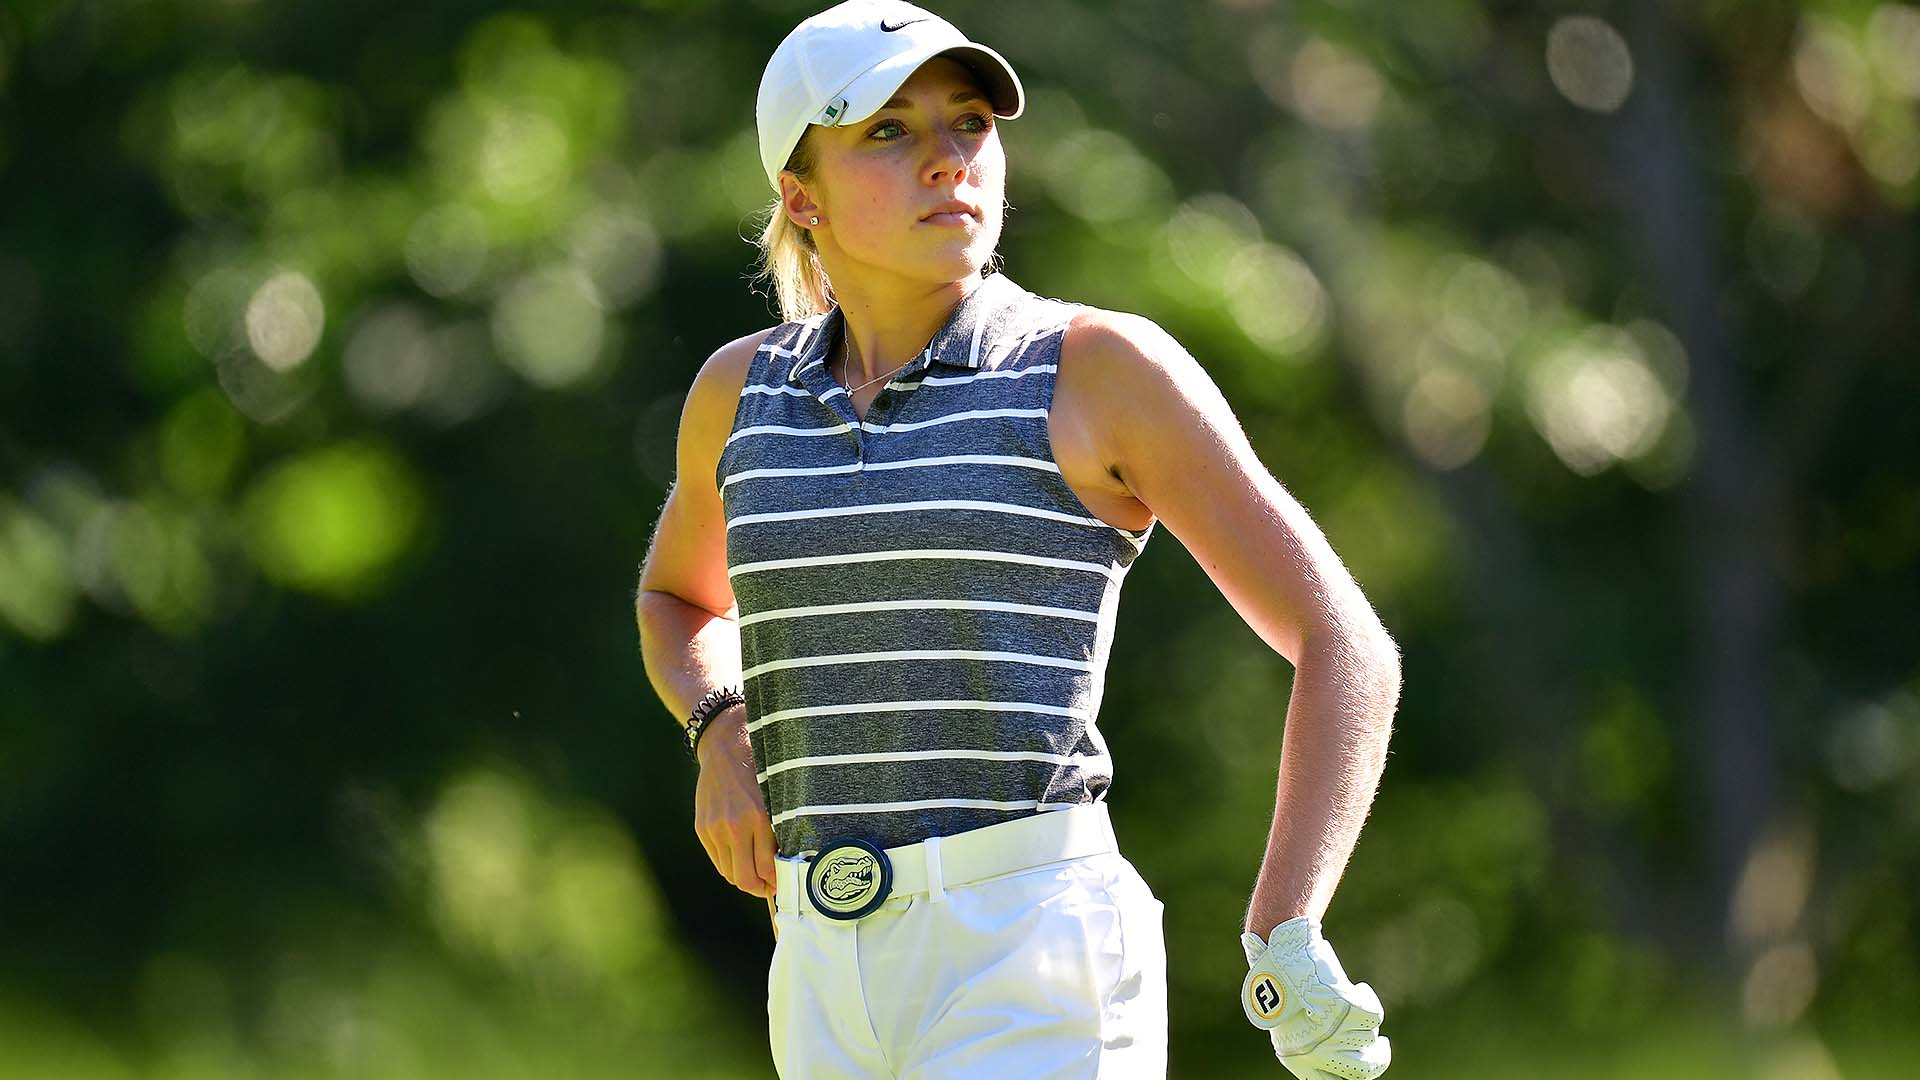 Lpga Money List 2020.Spotlight On College Stars Battling For Tour Cards At Lpga Q